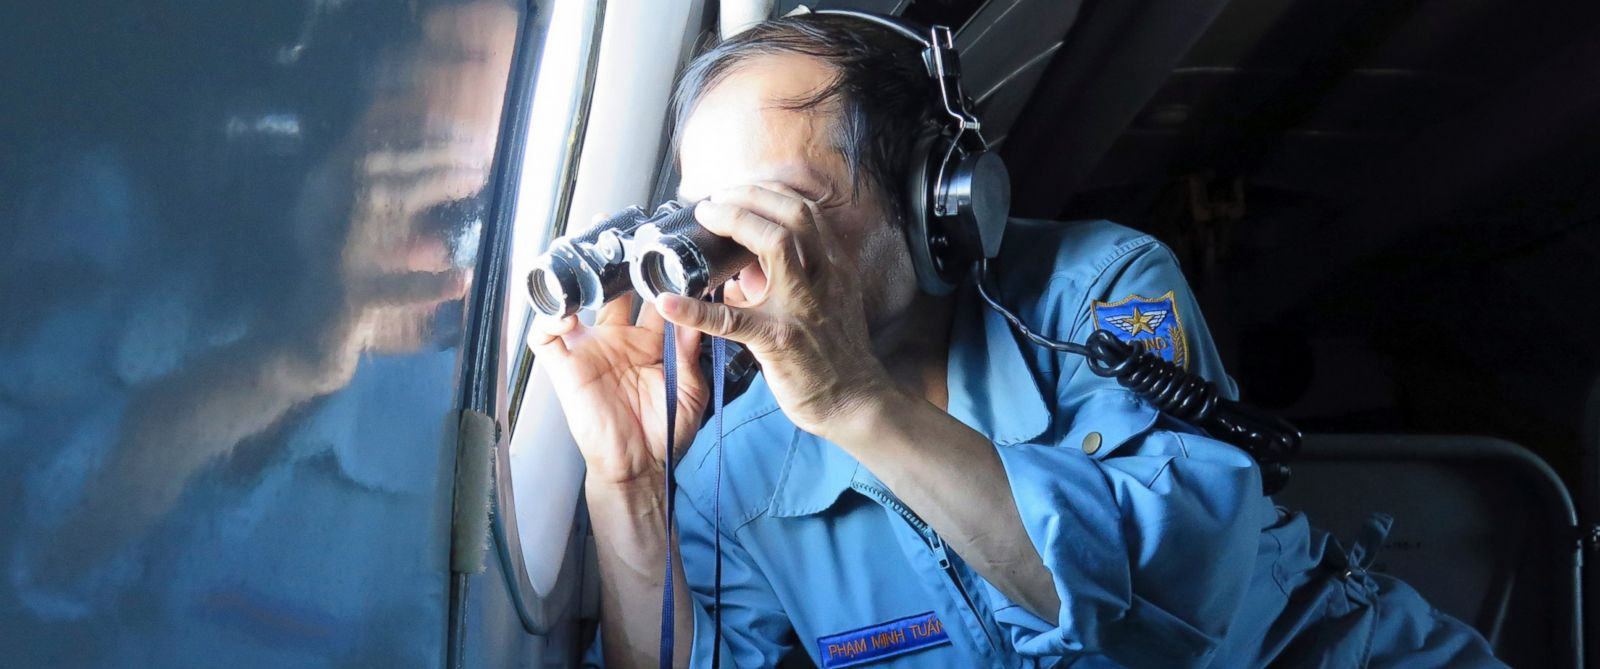 PHOTO: Vietnamese Air Force Col. Pham Minh Tuan uses binoculars on board a flying aircraft during a mission to search for the missing Malaysia Airlines flight MH370 in the Gulf of Thailand, Thursday, March 13, 2014.